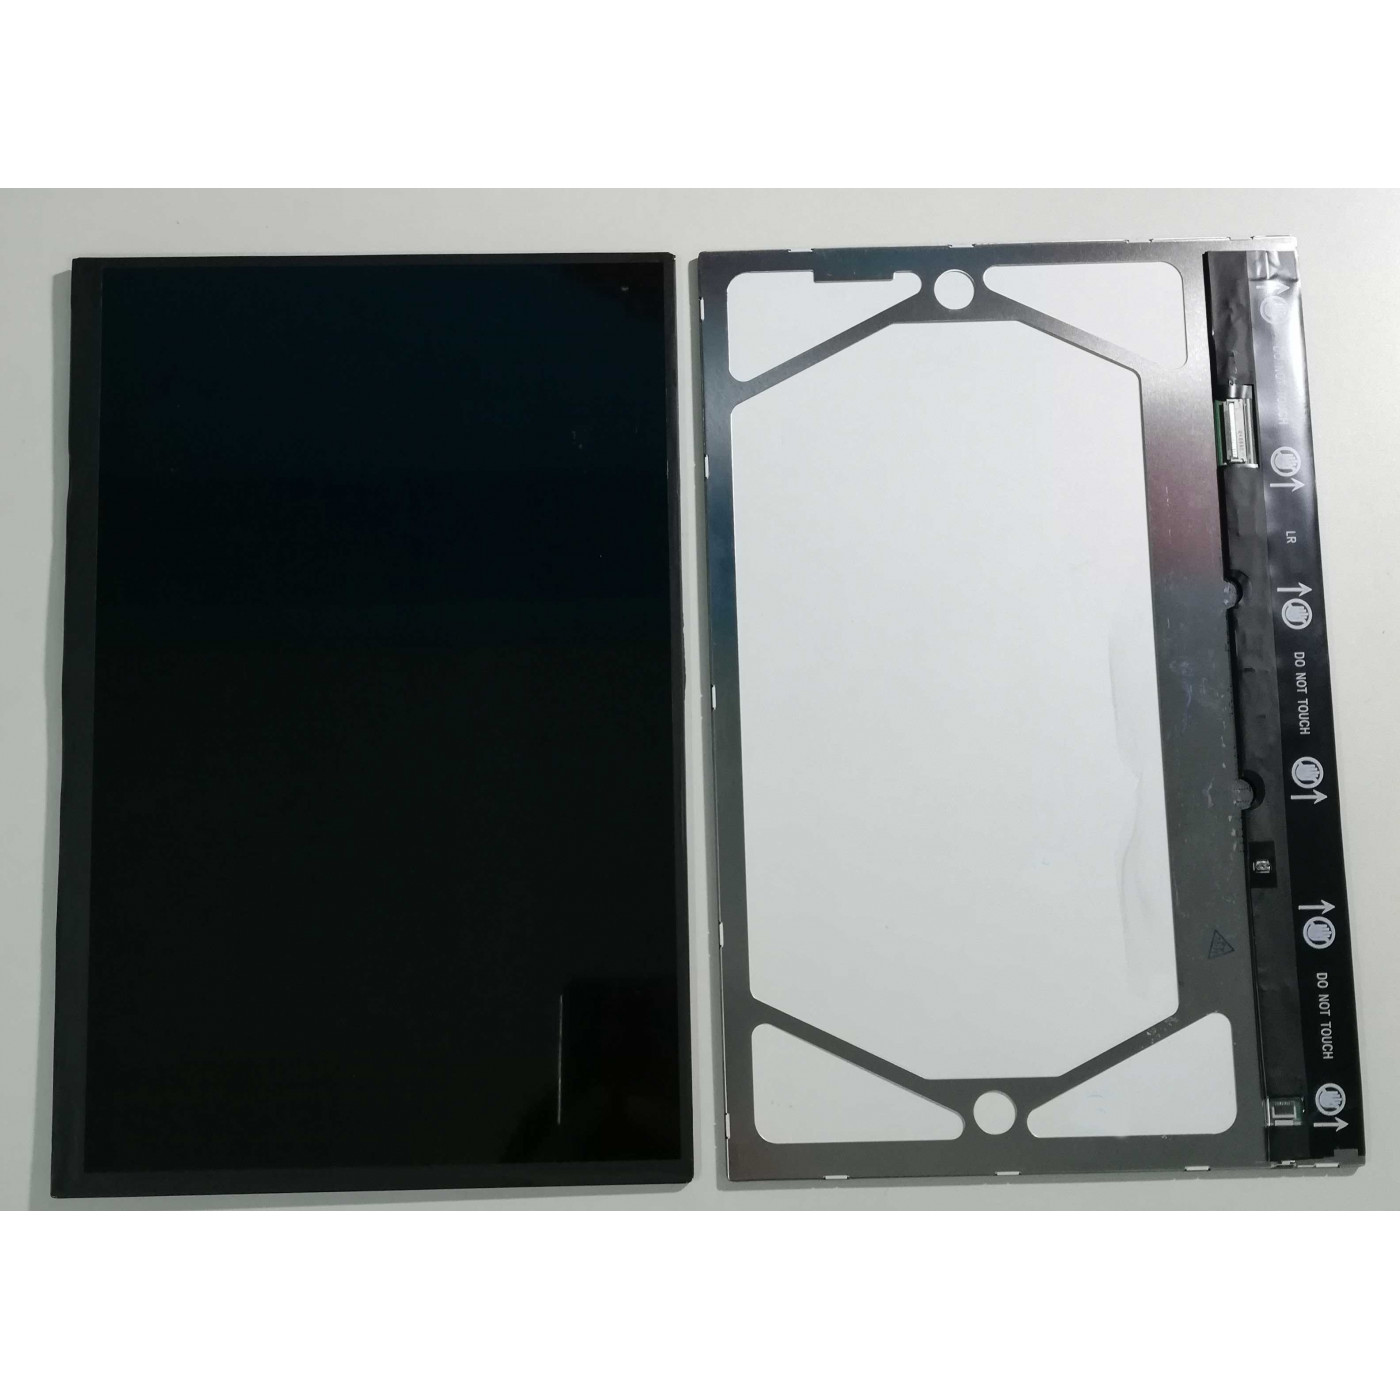 LCD DISPLAY For Samsung Galaxy Tab 3 P5200 P5210 P5220 P5100 P5110 GT P7500